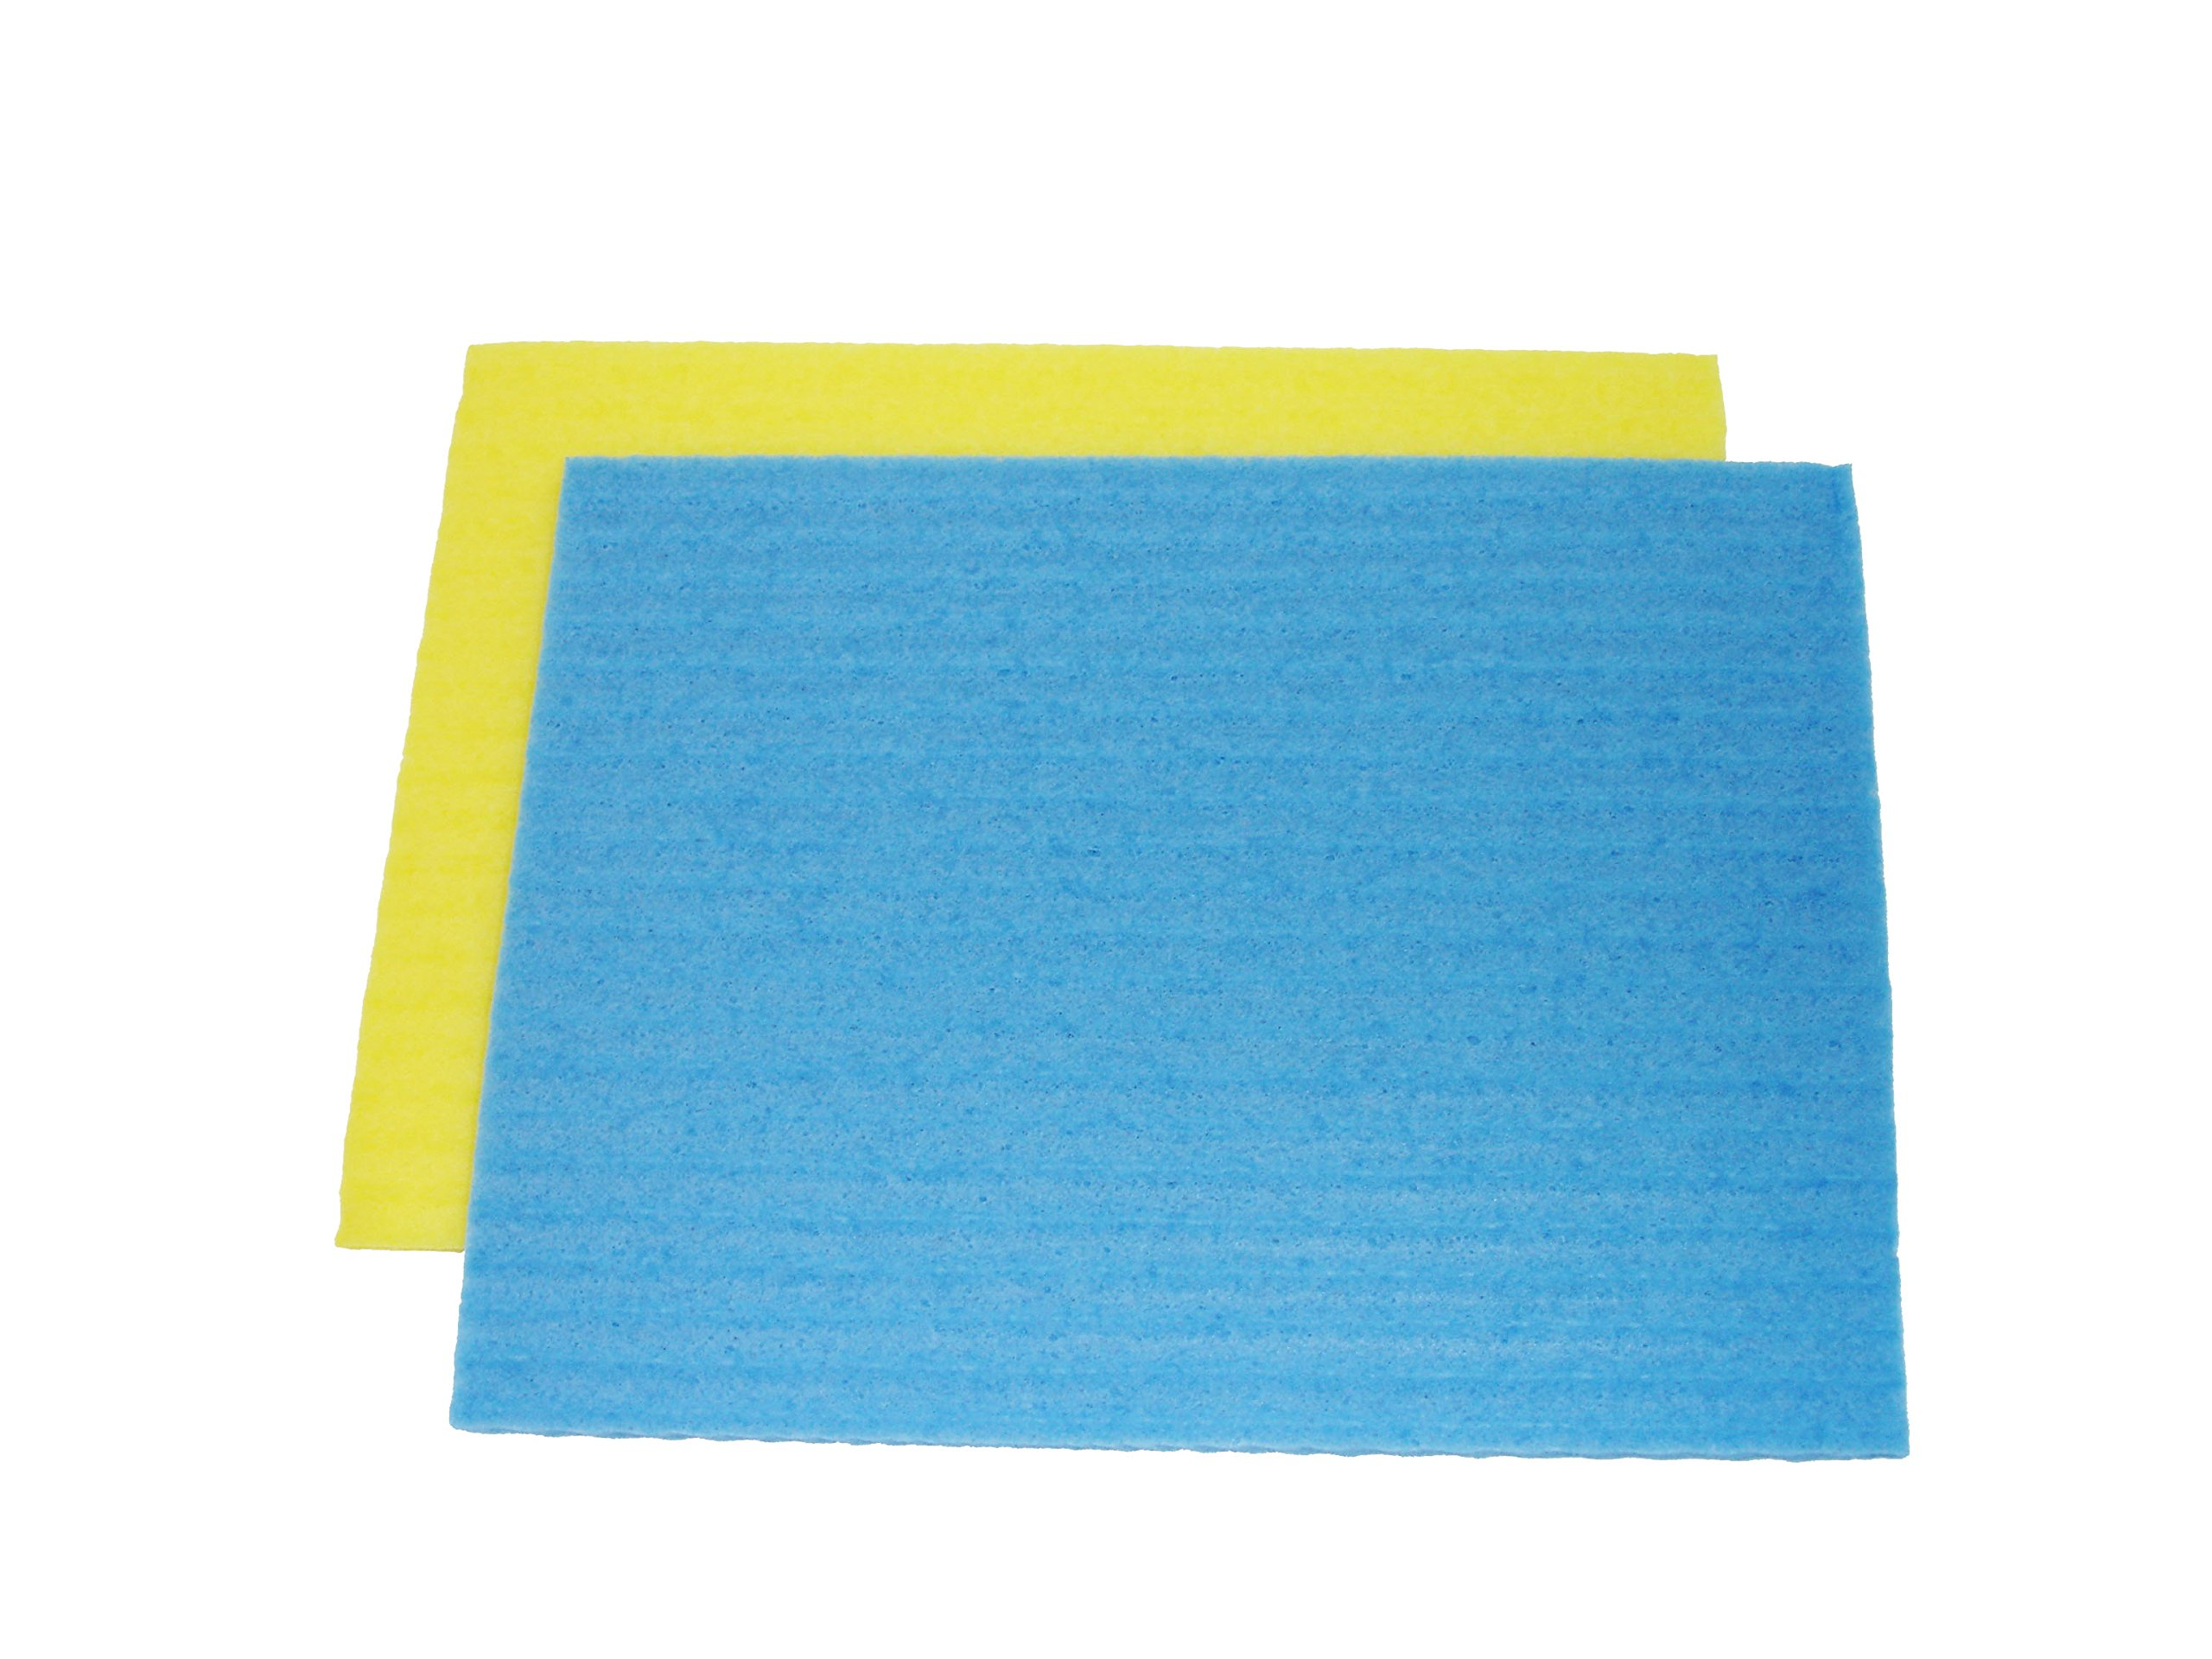 Cellulose Sponge Cloth by Compac Industries - 12 Sponges, Cleaning Reusable Kitchen Sponge Cloths - Save Money by Replacing Paper Towels - 2 Count - 6 Packs by Compac Industries